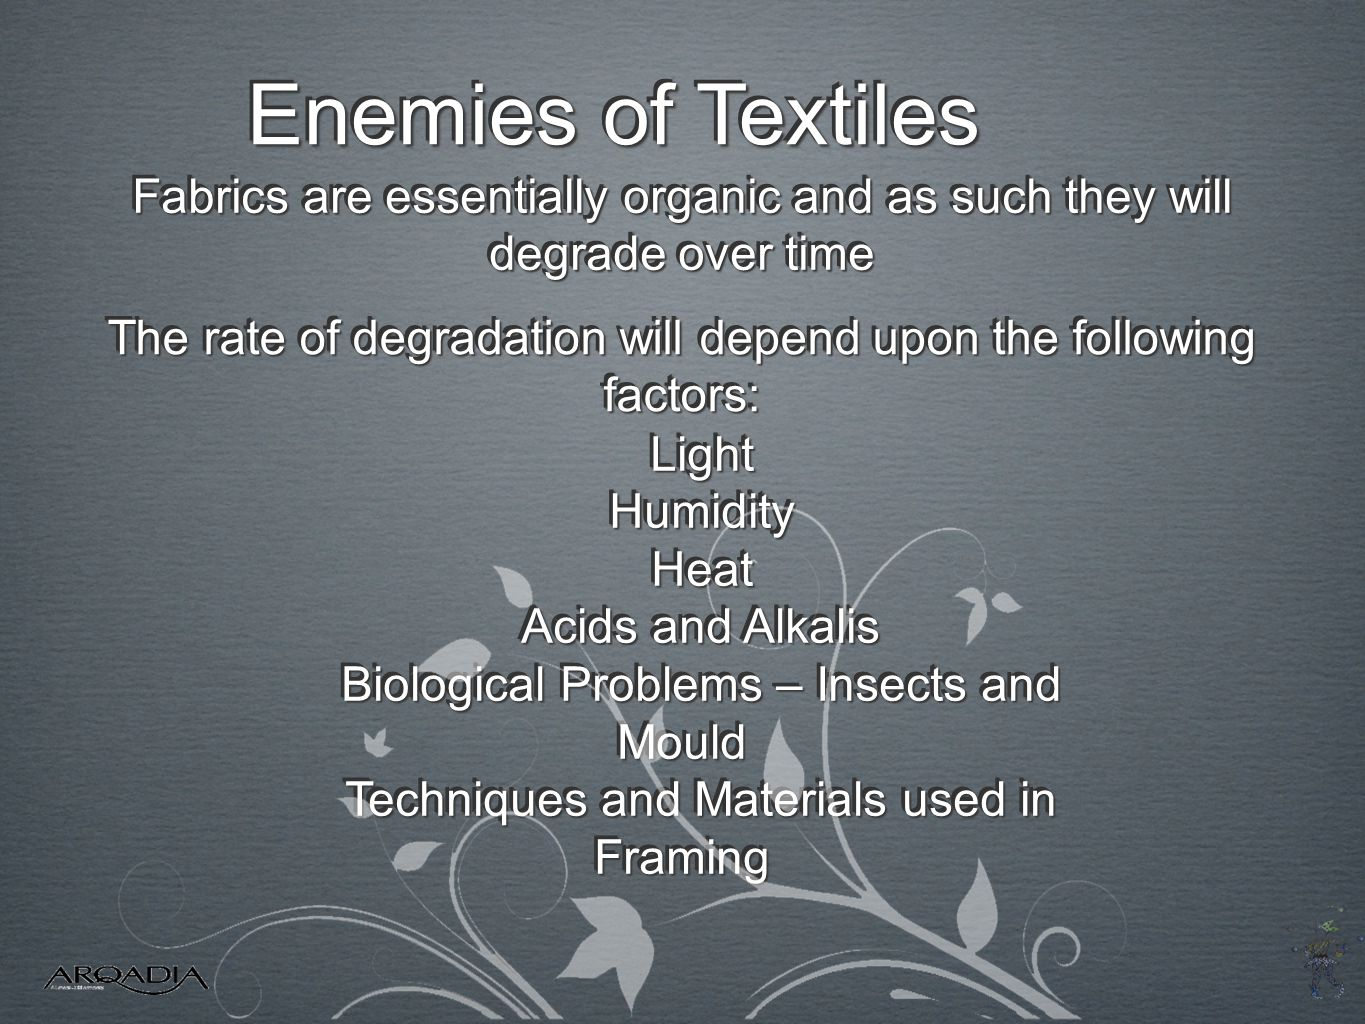 Enemies of Textiles Fabrics are essentially organic and as such they will degrade over time.